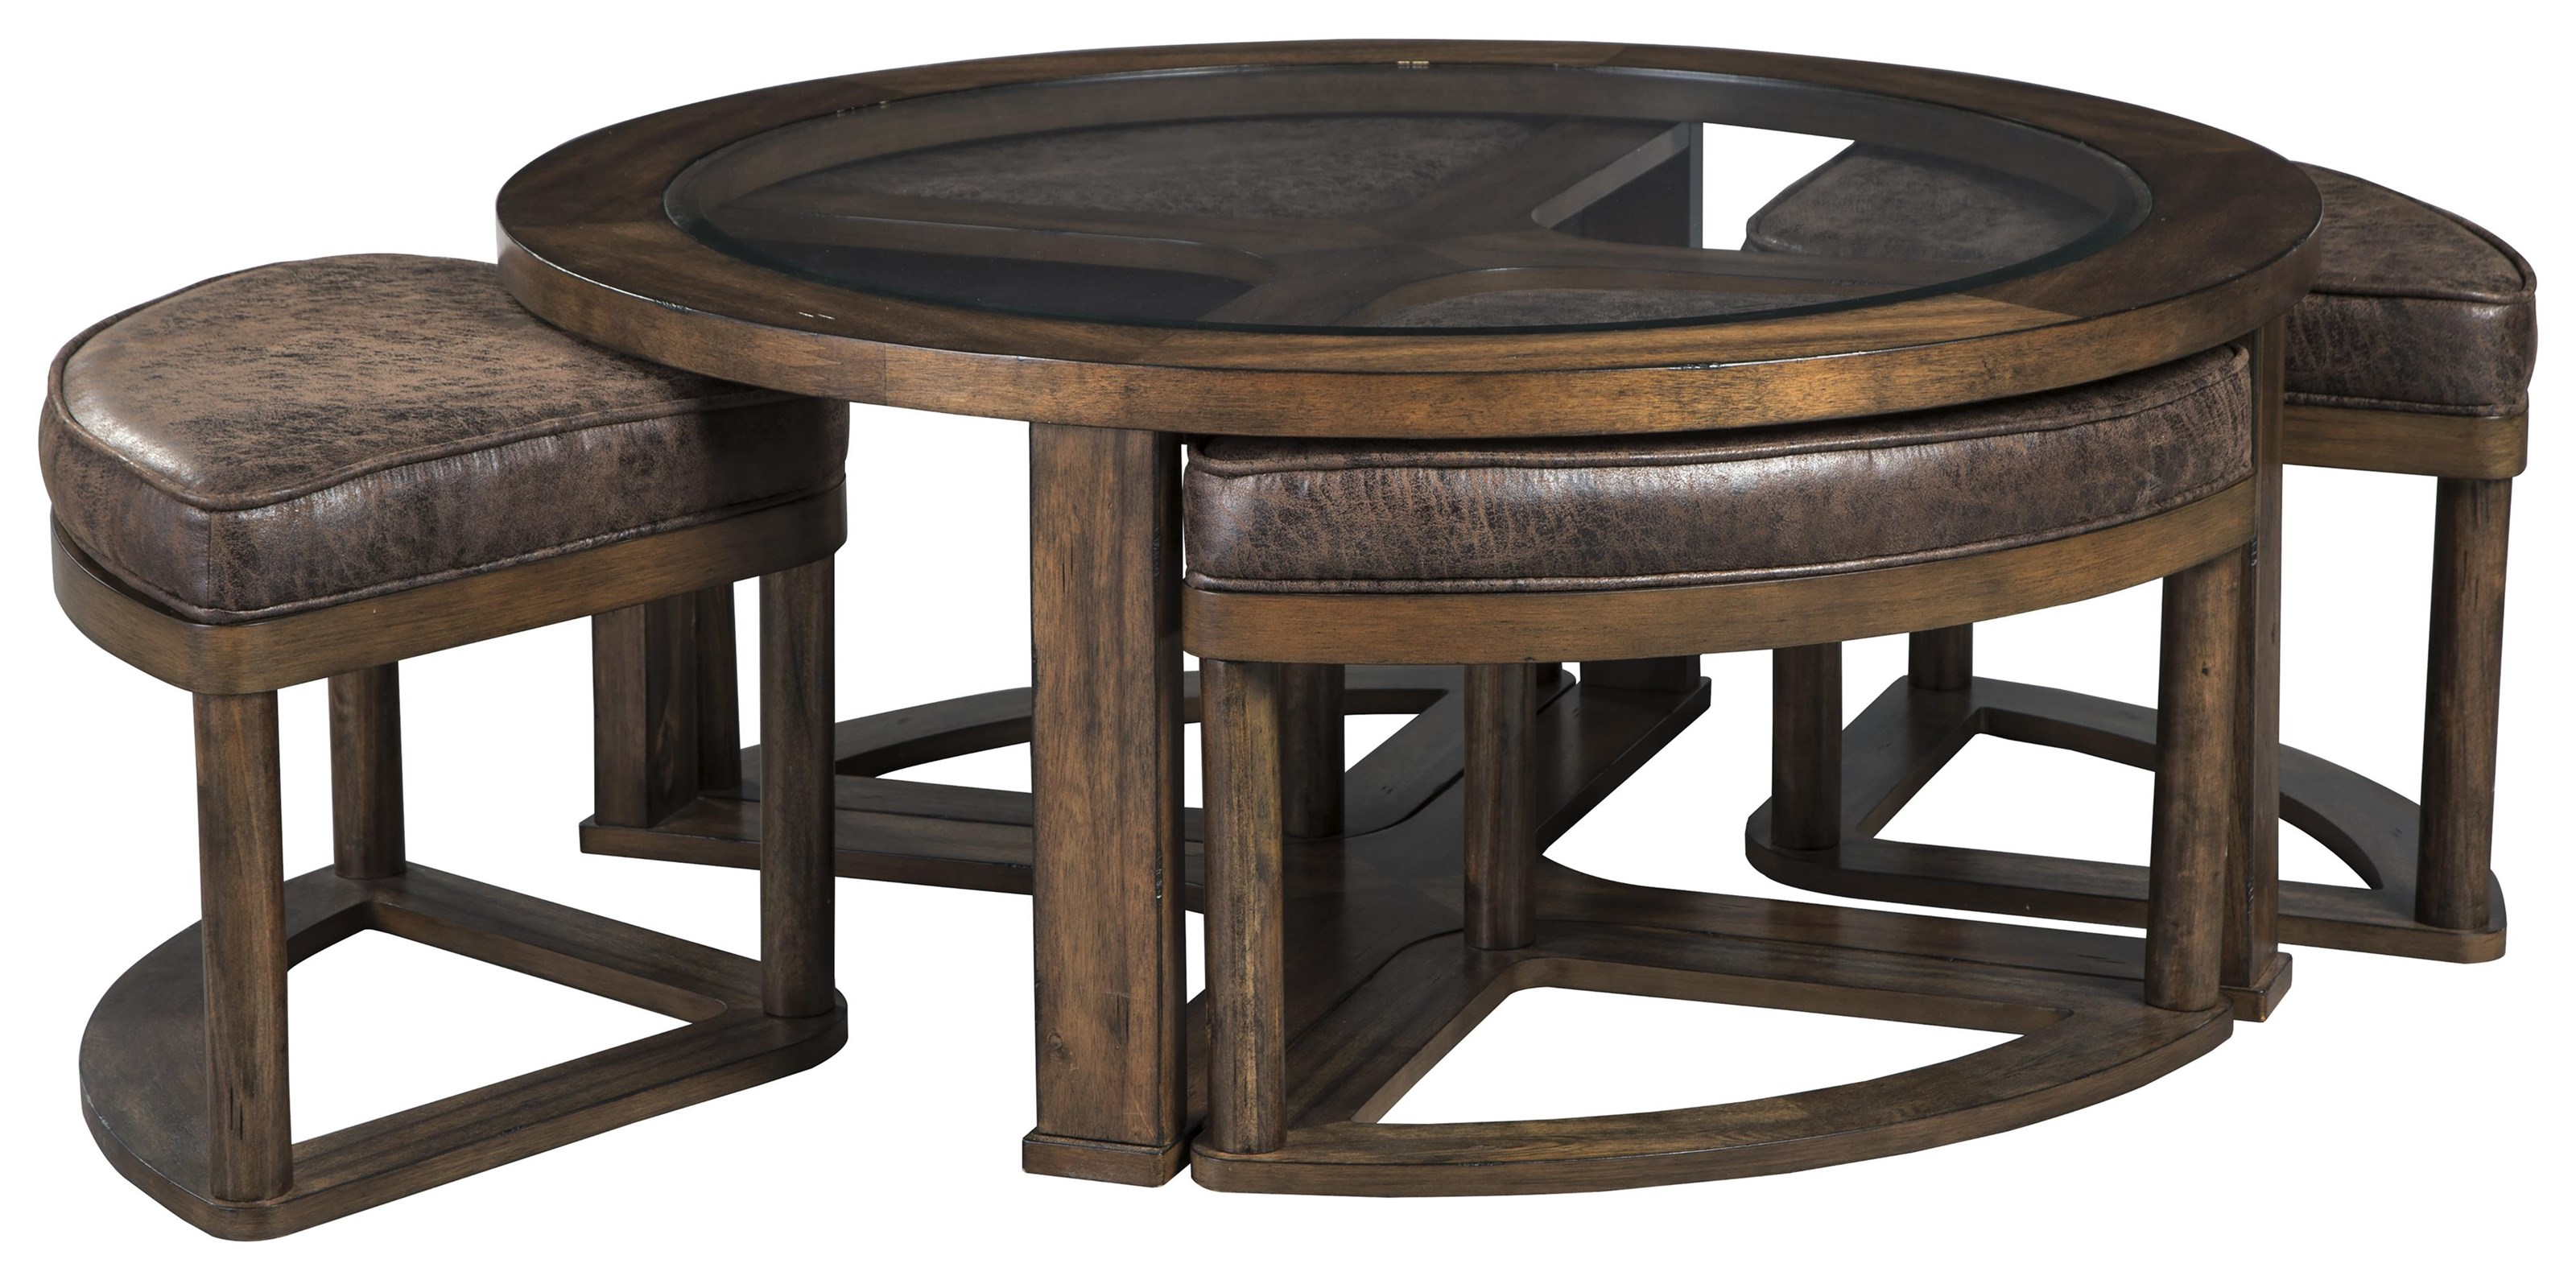 Hannery T725 8 2x6 Round Tail Table